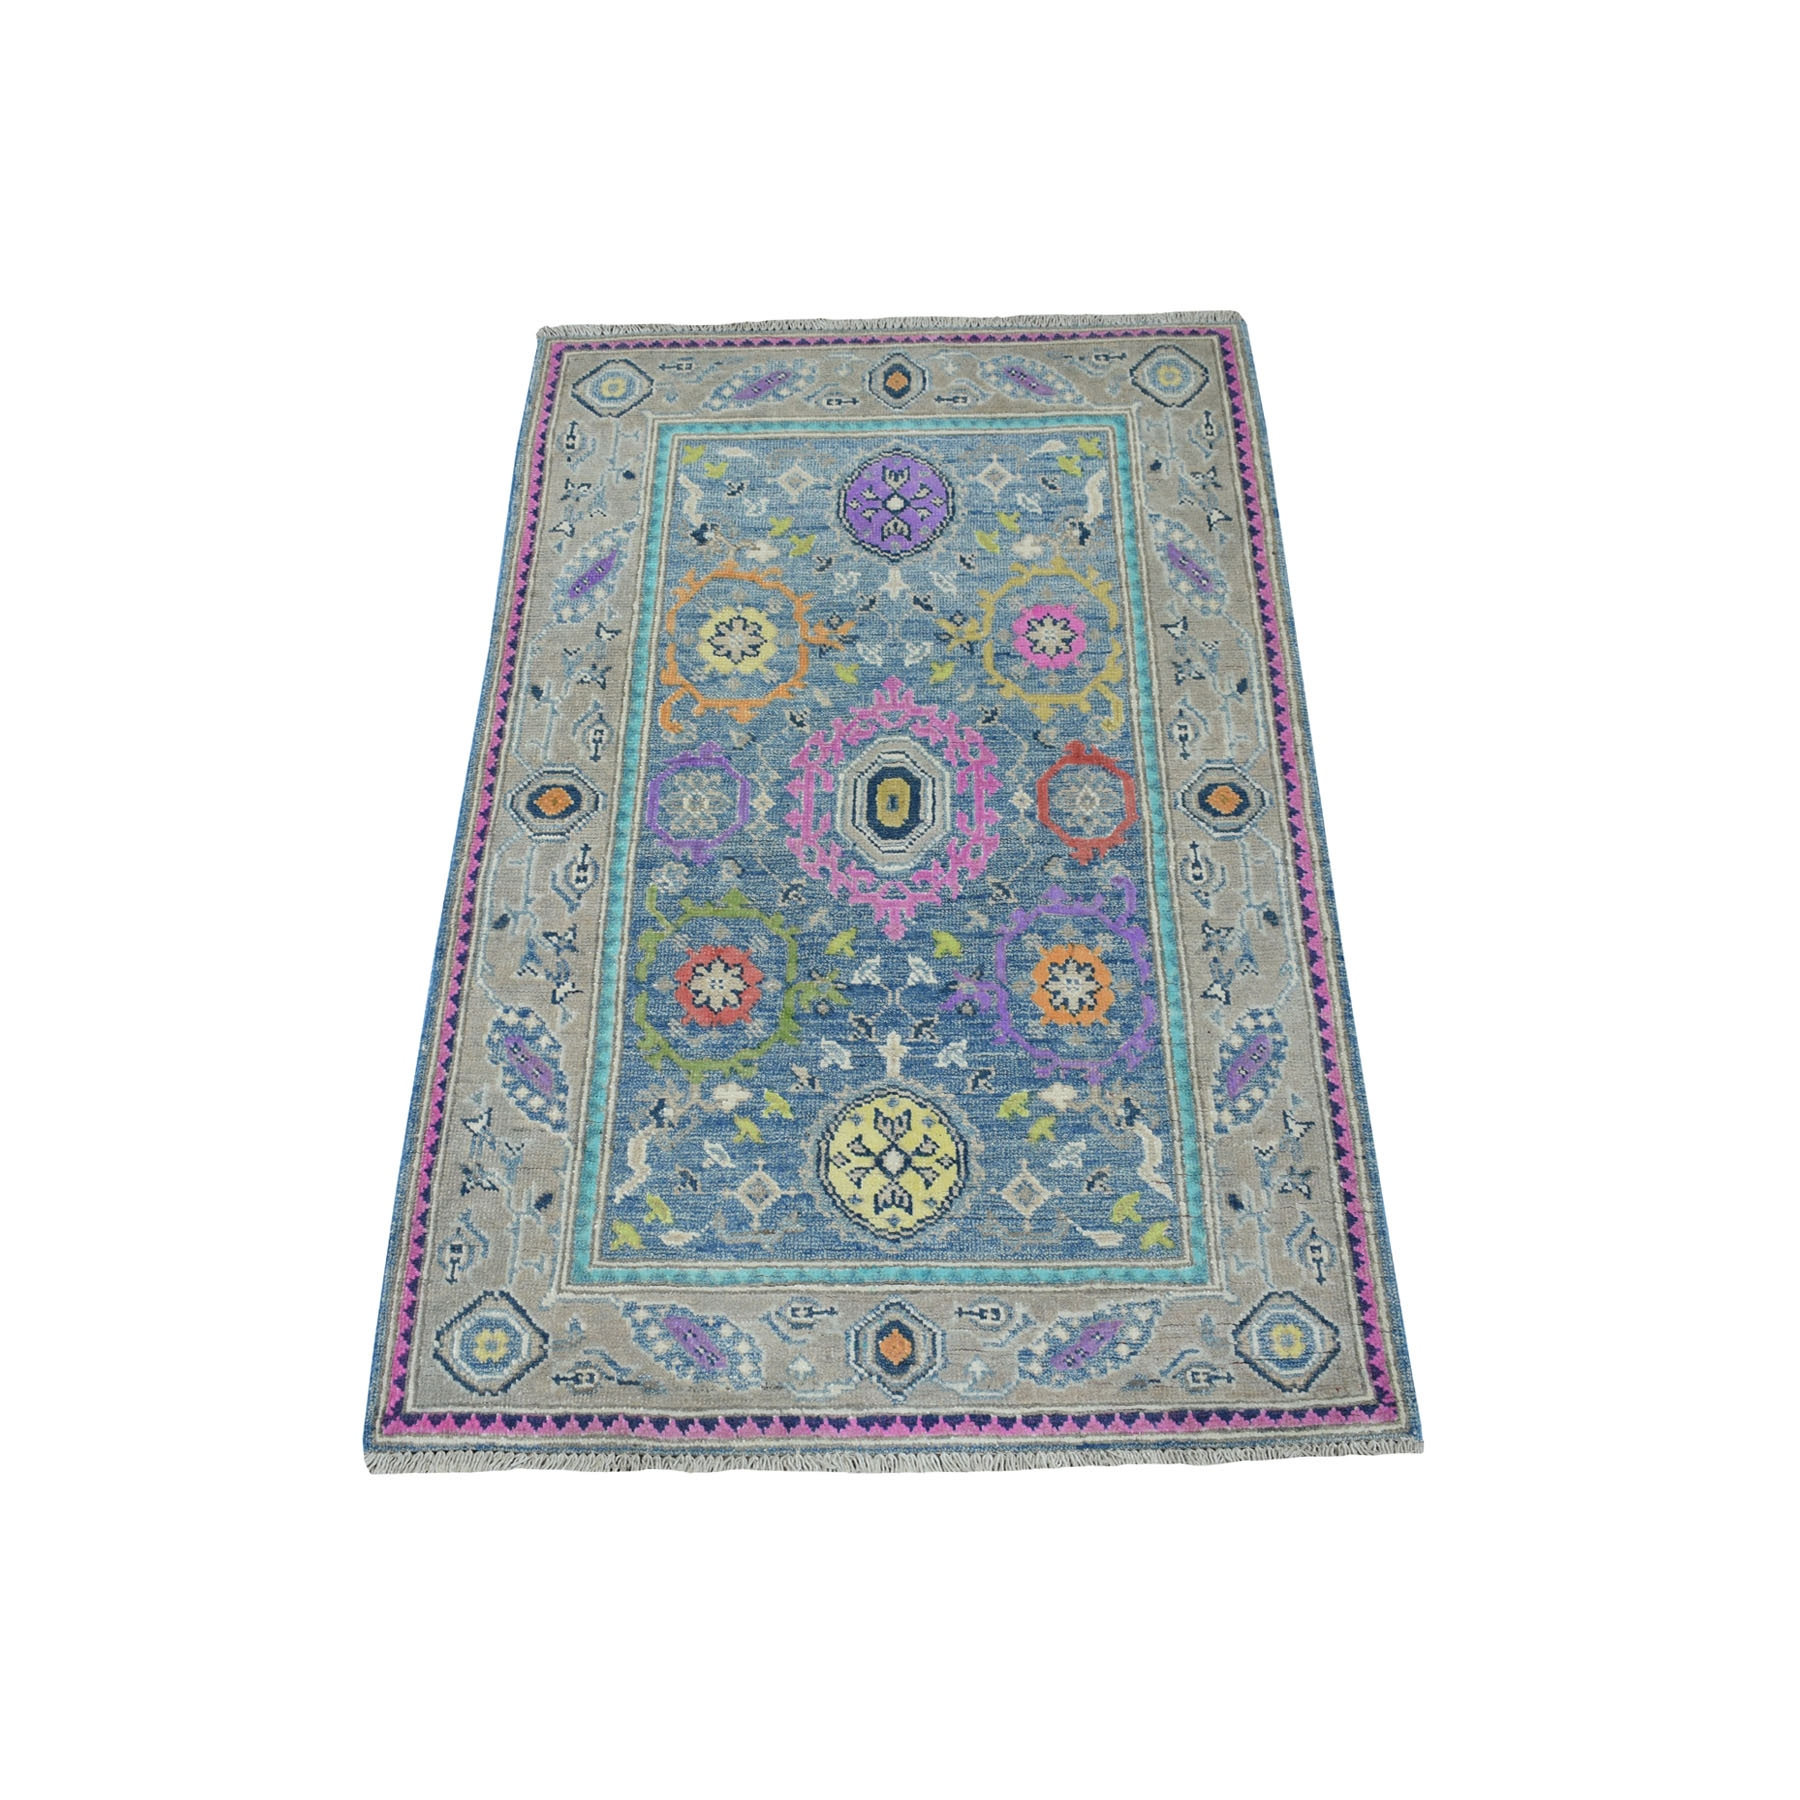 "2'9""x4' Colorful Blue Fusion Kazak Pure Wool Geometric Design Hand Knotted Oriental Rug 53804"